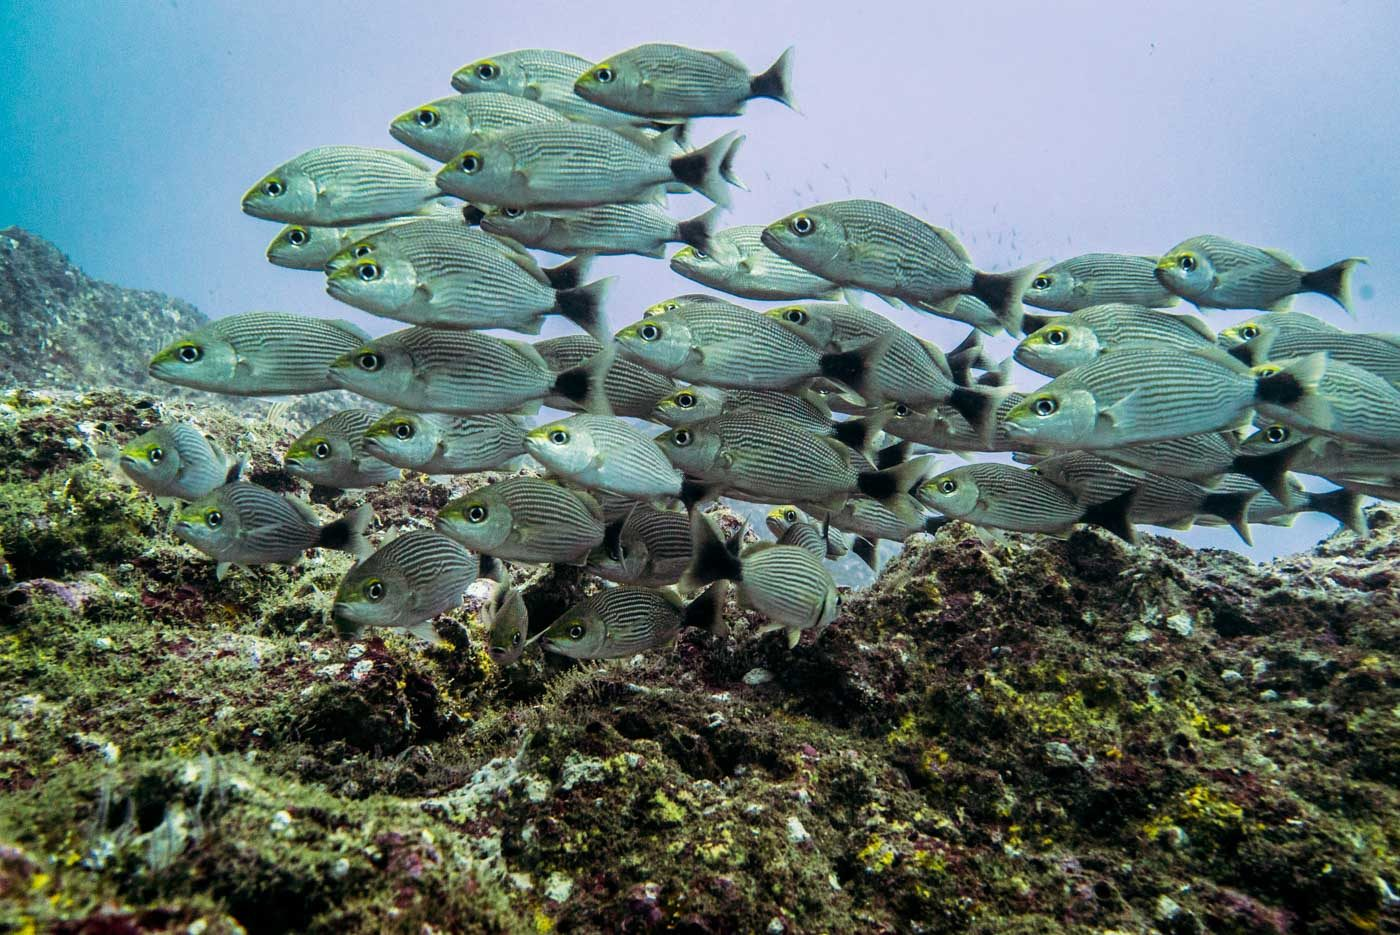 Guide to Scuba Diving in Costa Rica